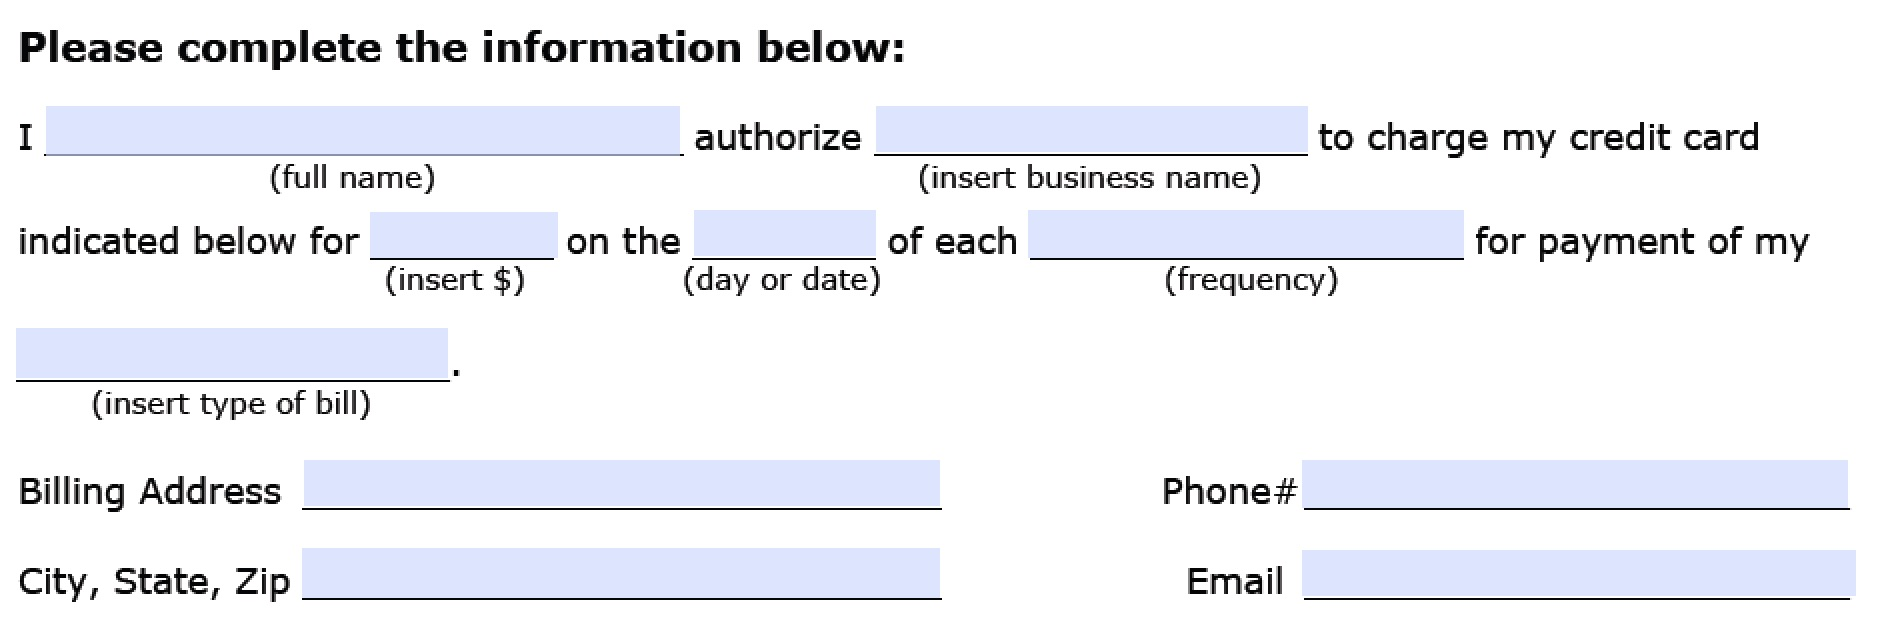 Recurring Payment Authorization Form Part 2